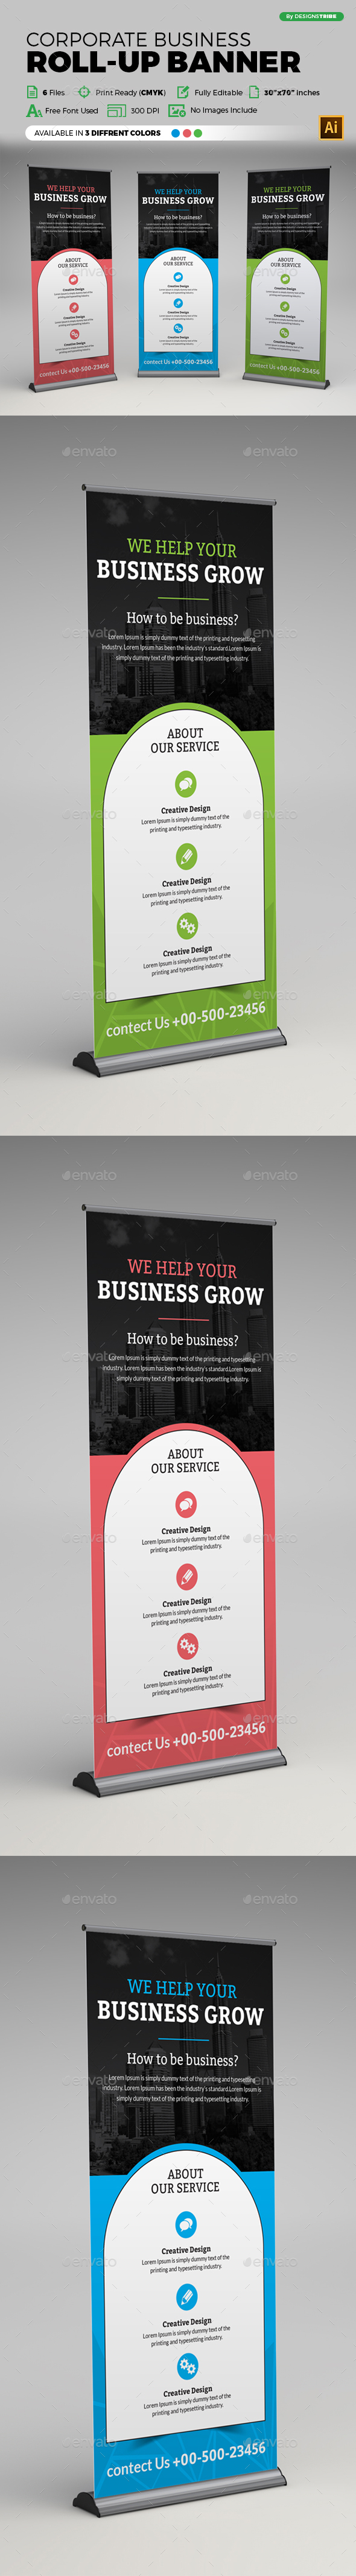 Corporate Business Roll-up Banner - Flyers Print Templates